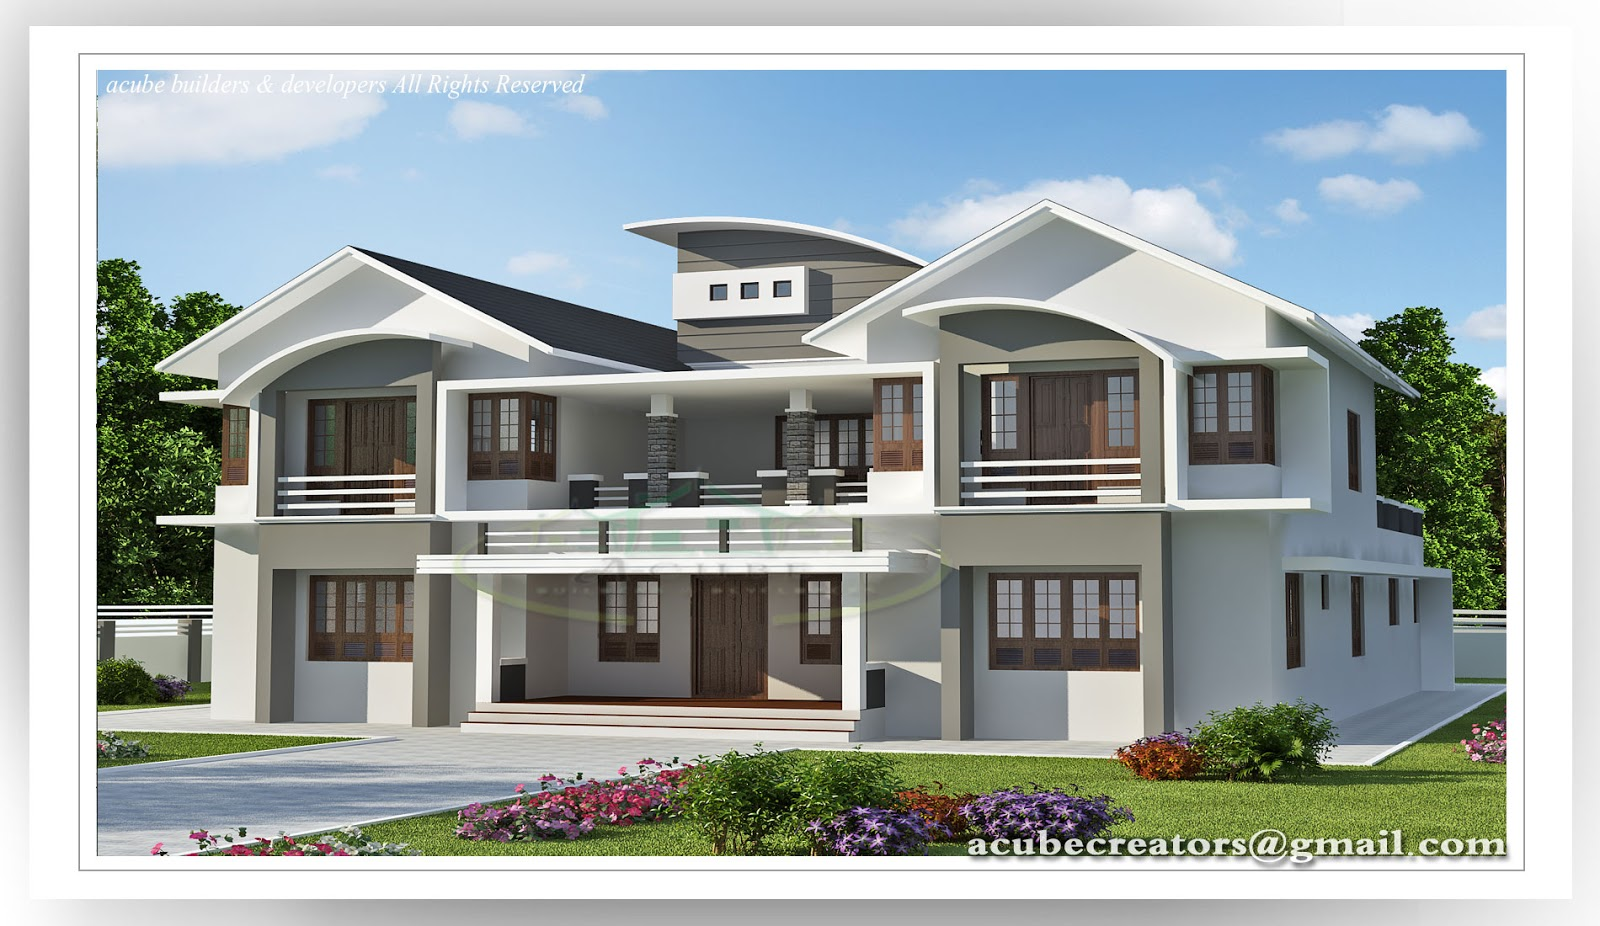 6 bedroom luxury villa design 5091 plan 149 for 6 bedroom home designs